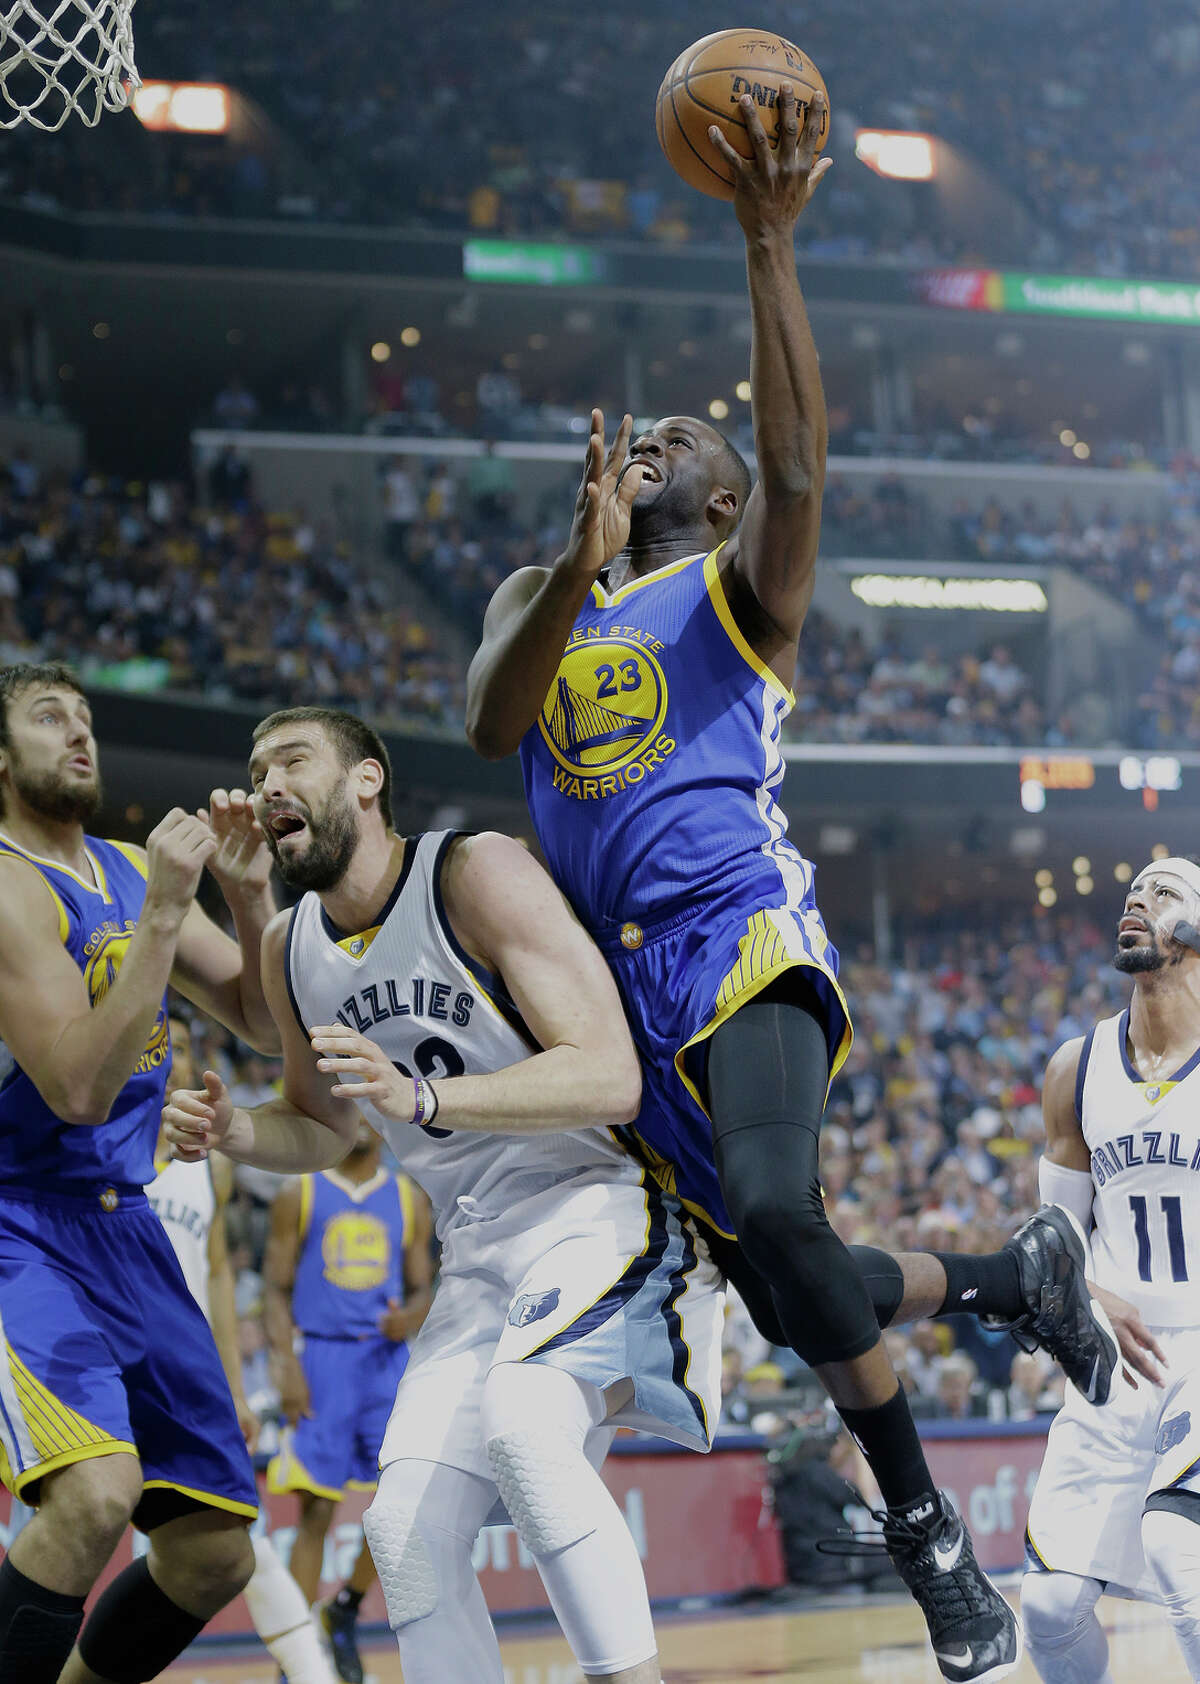 Draymond Green, coming off a 1-for-8 shooting effort, went 6-for-12 from the floor and scored 16 points in Game 4 against the Grizzlies.